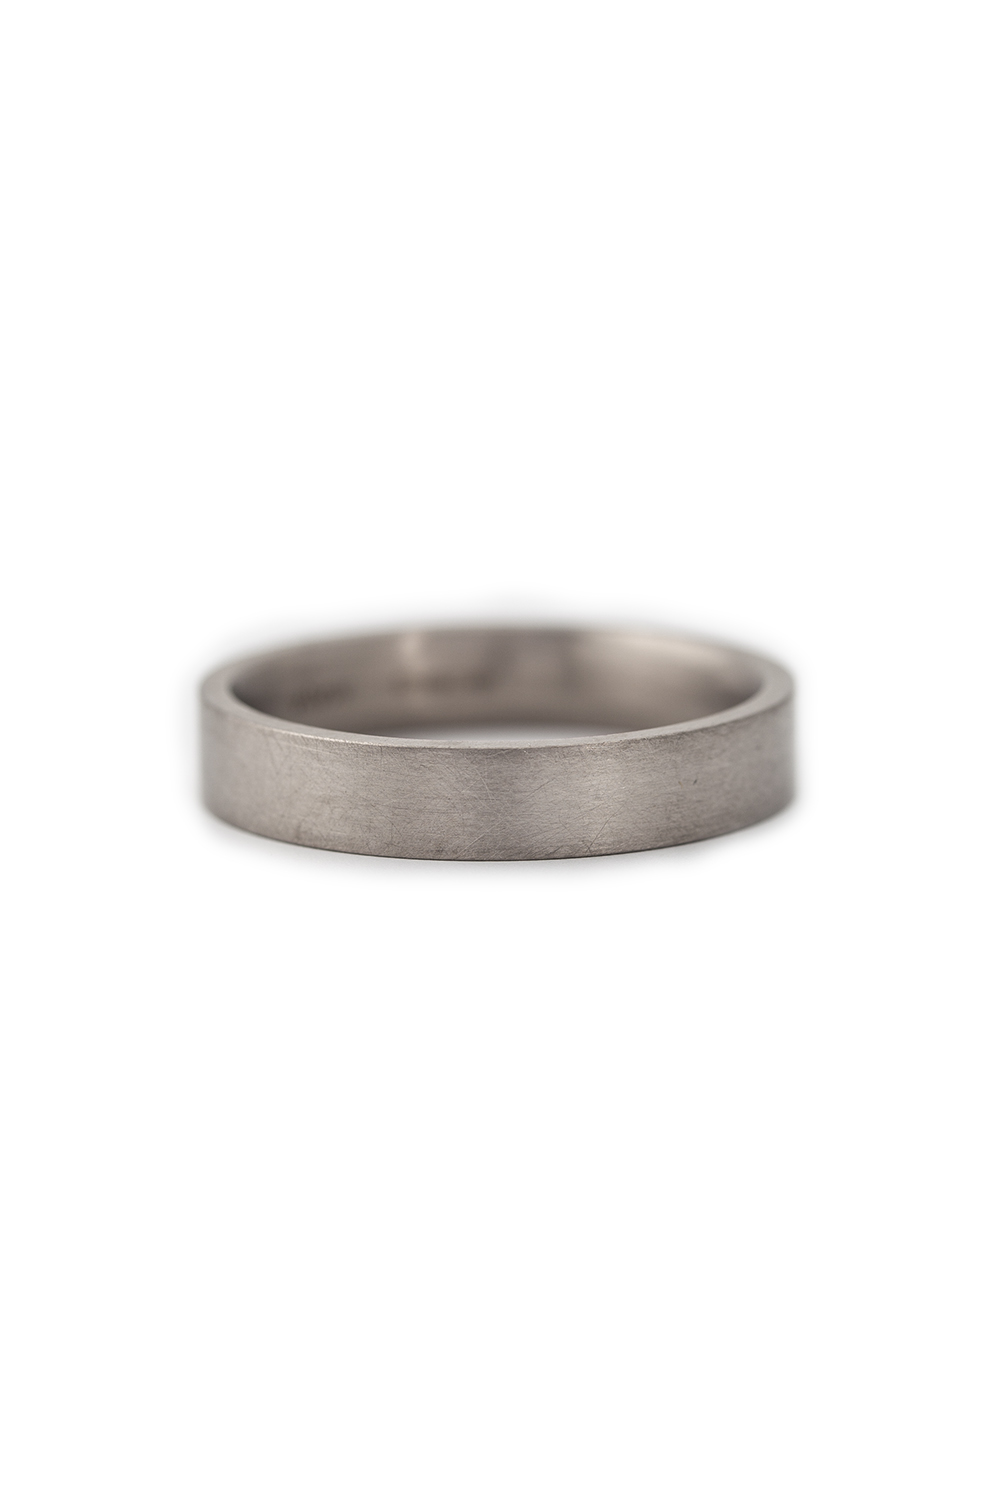 White gold wide band with flat edge